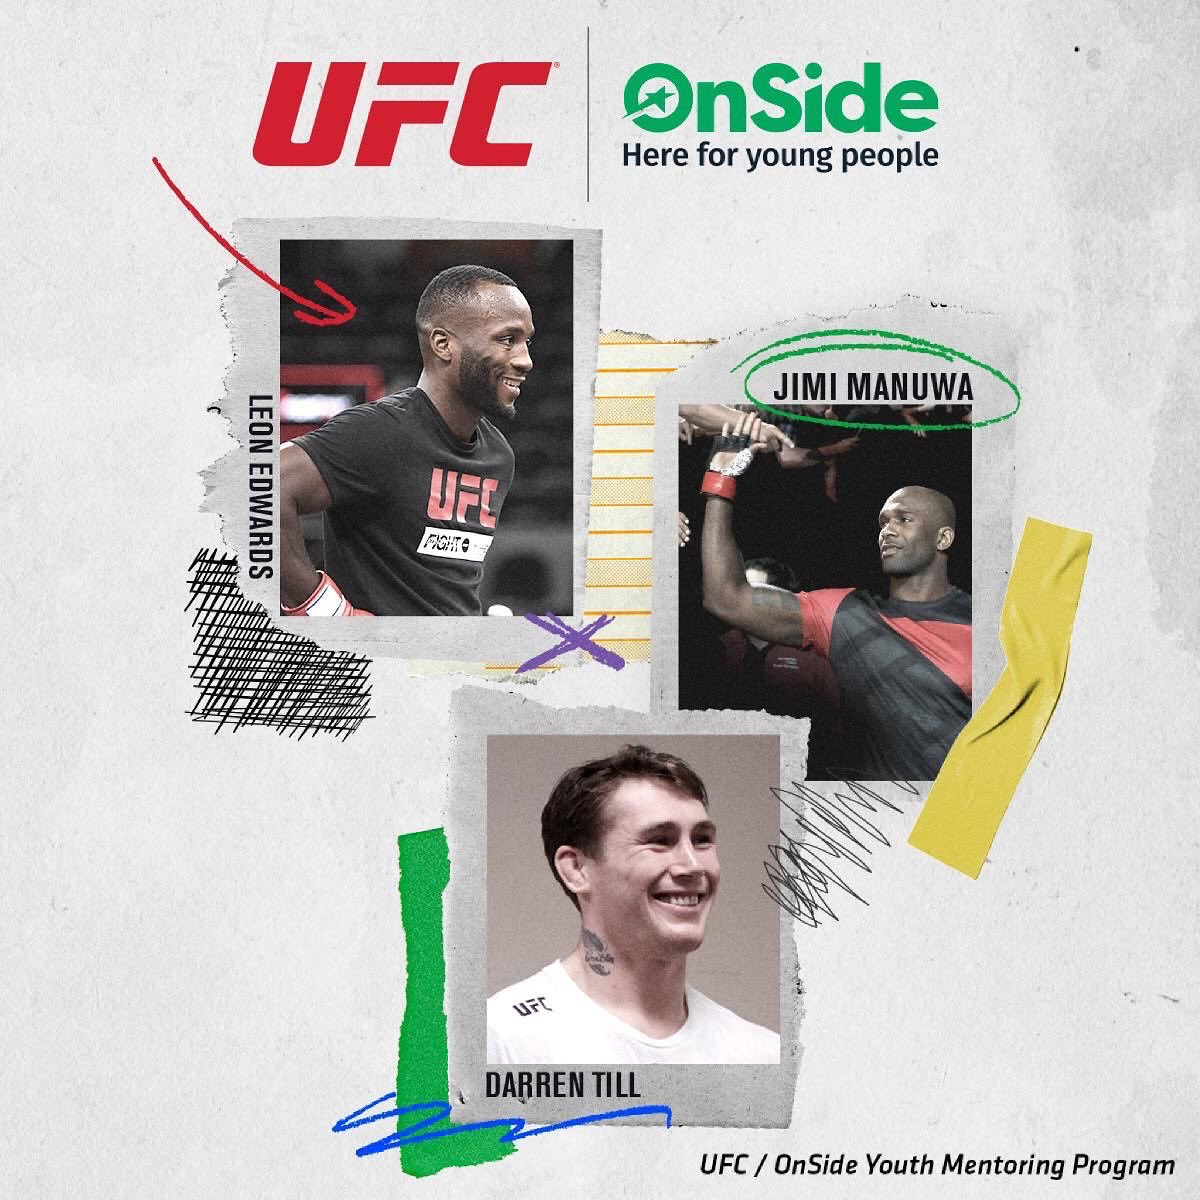 Today we officially launch our UFC / Onside Youth Mentoring Program.  This is something close to my heart and I can't wait to get this going and help our local communities. @UFC  @UFCEurope @OnsideYZ @darrentill2 @pb1_ https://t.co/tIbkvQBtBy